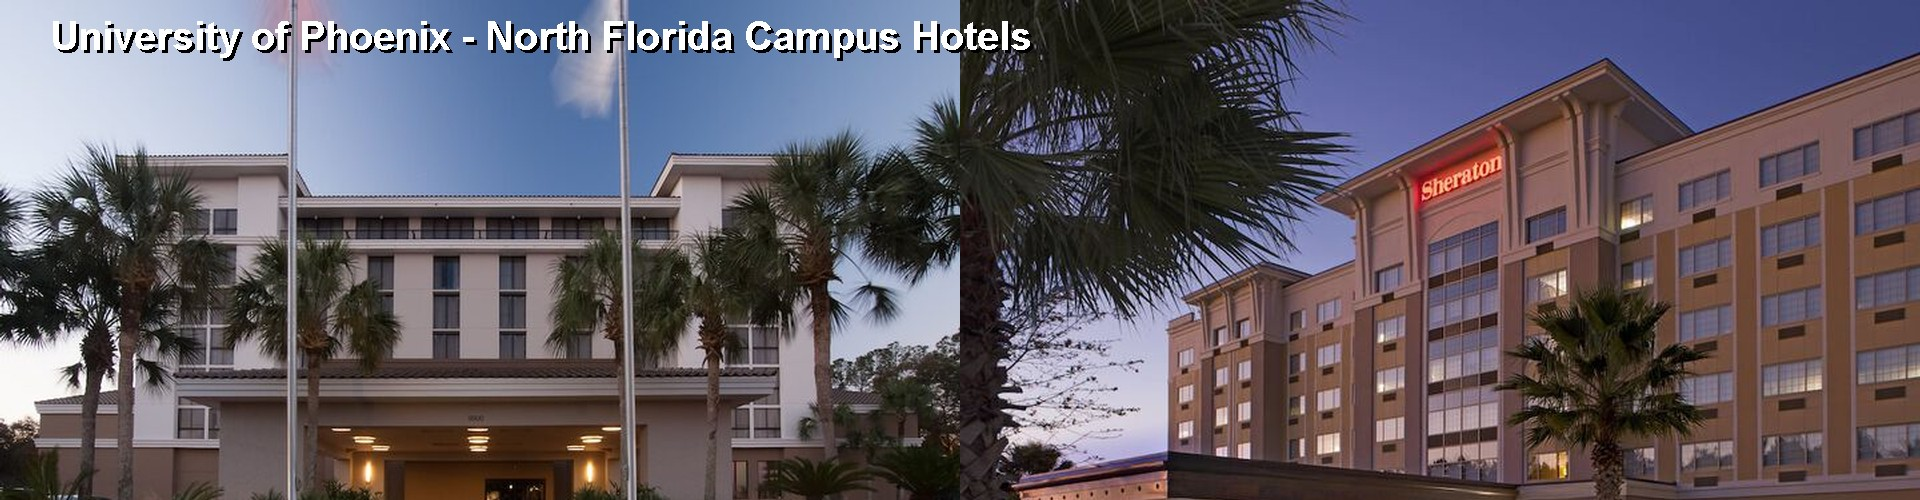 5 Best Hotels near University of Phoenix - North Florida Campus